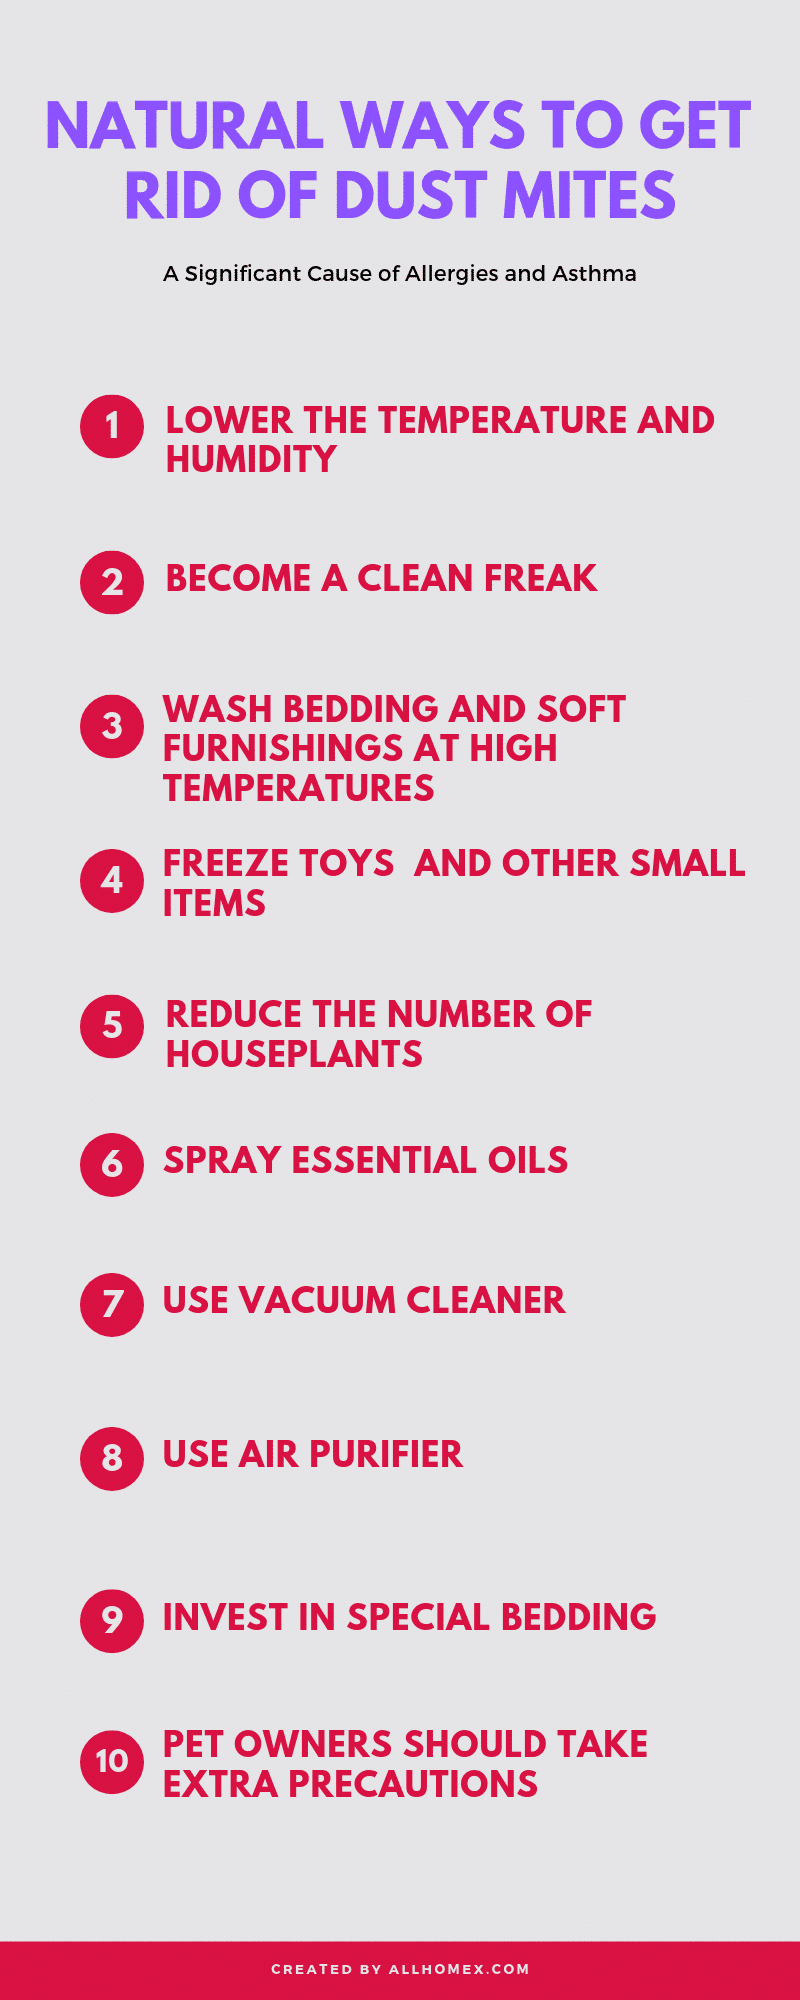 How-to-get-Rid-of-dust-mites-naturally